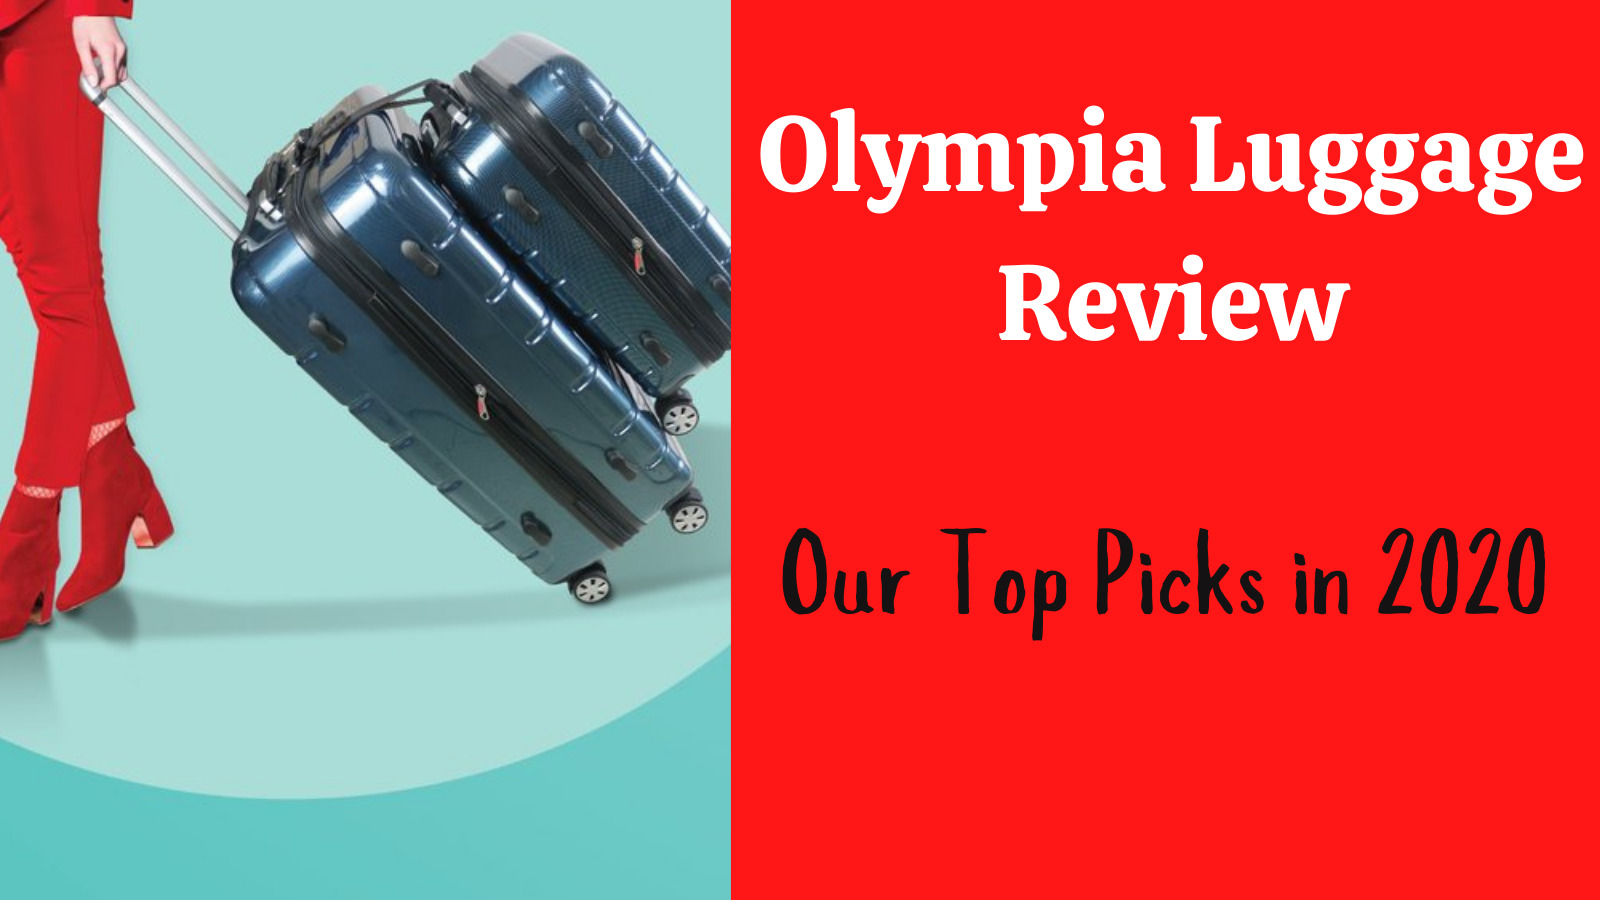 Olympia Luggage review: feature image of lady wheeling suitcases